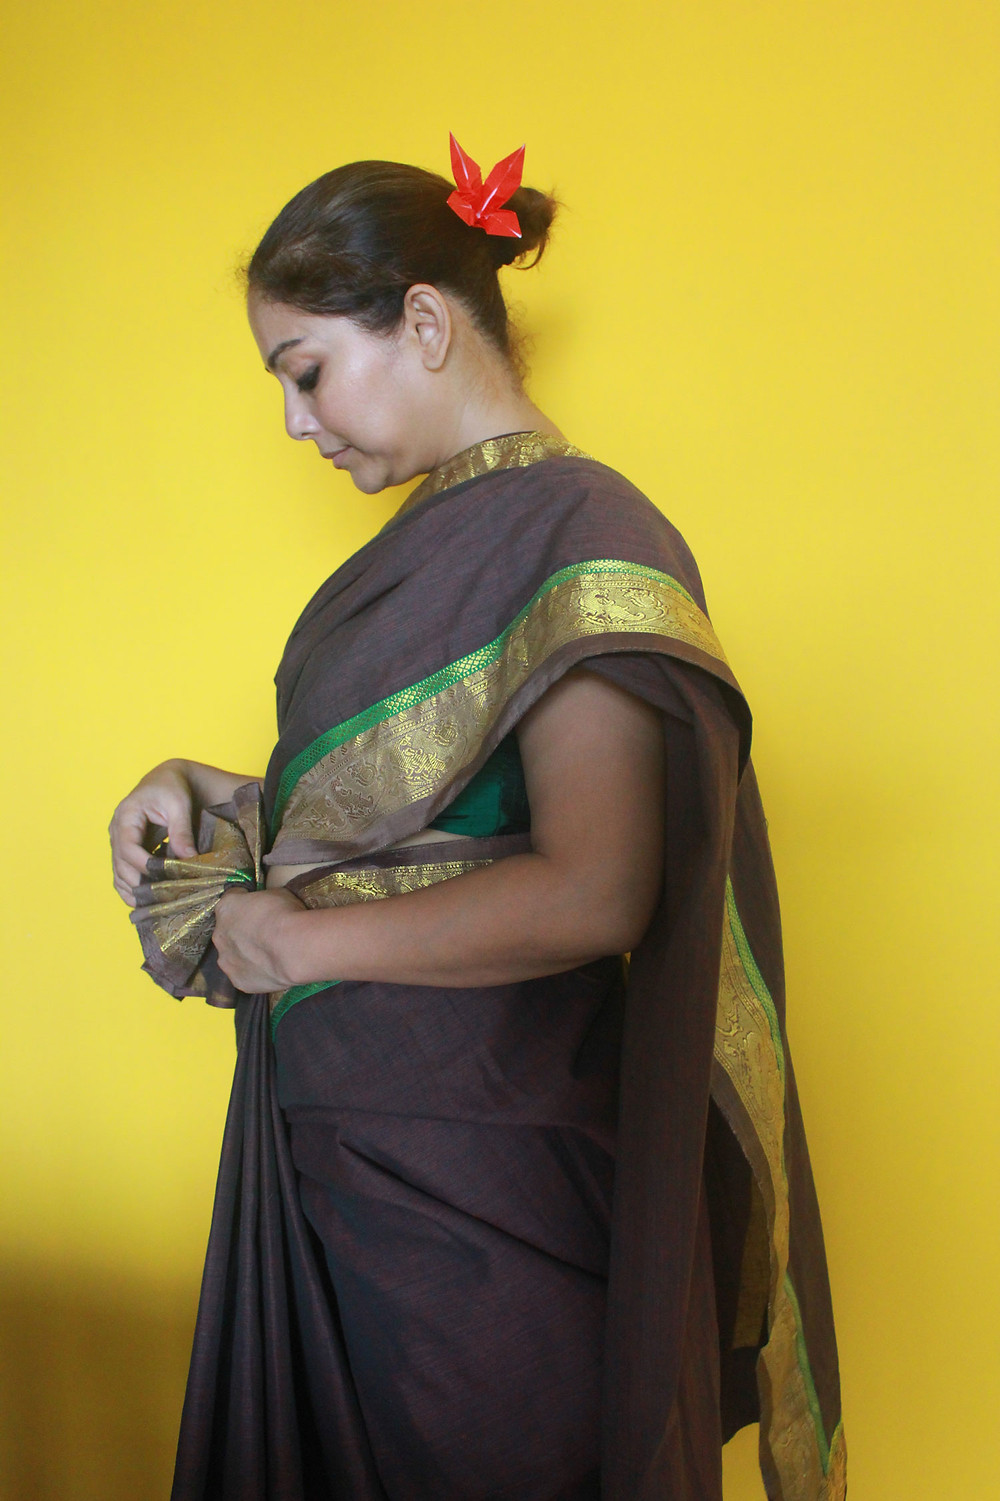 Patchworked khadi sari with handstitches and leftover tape